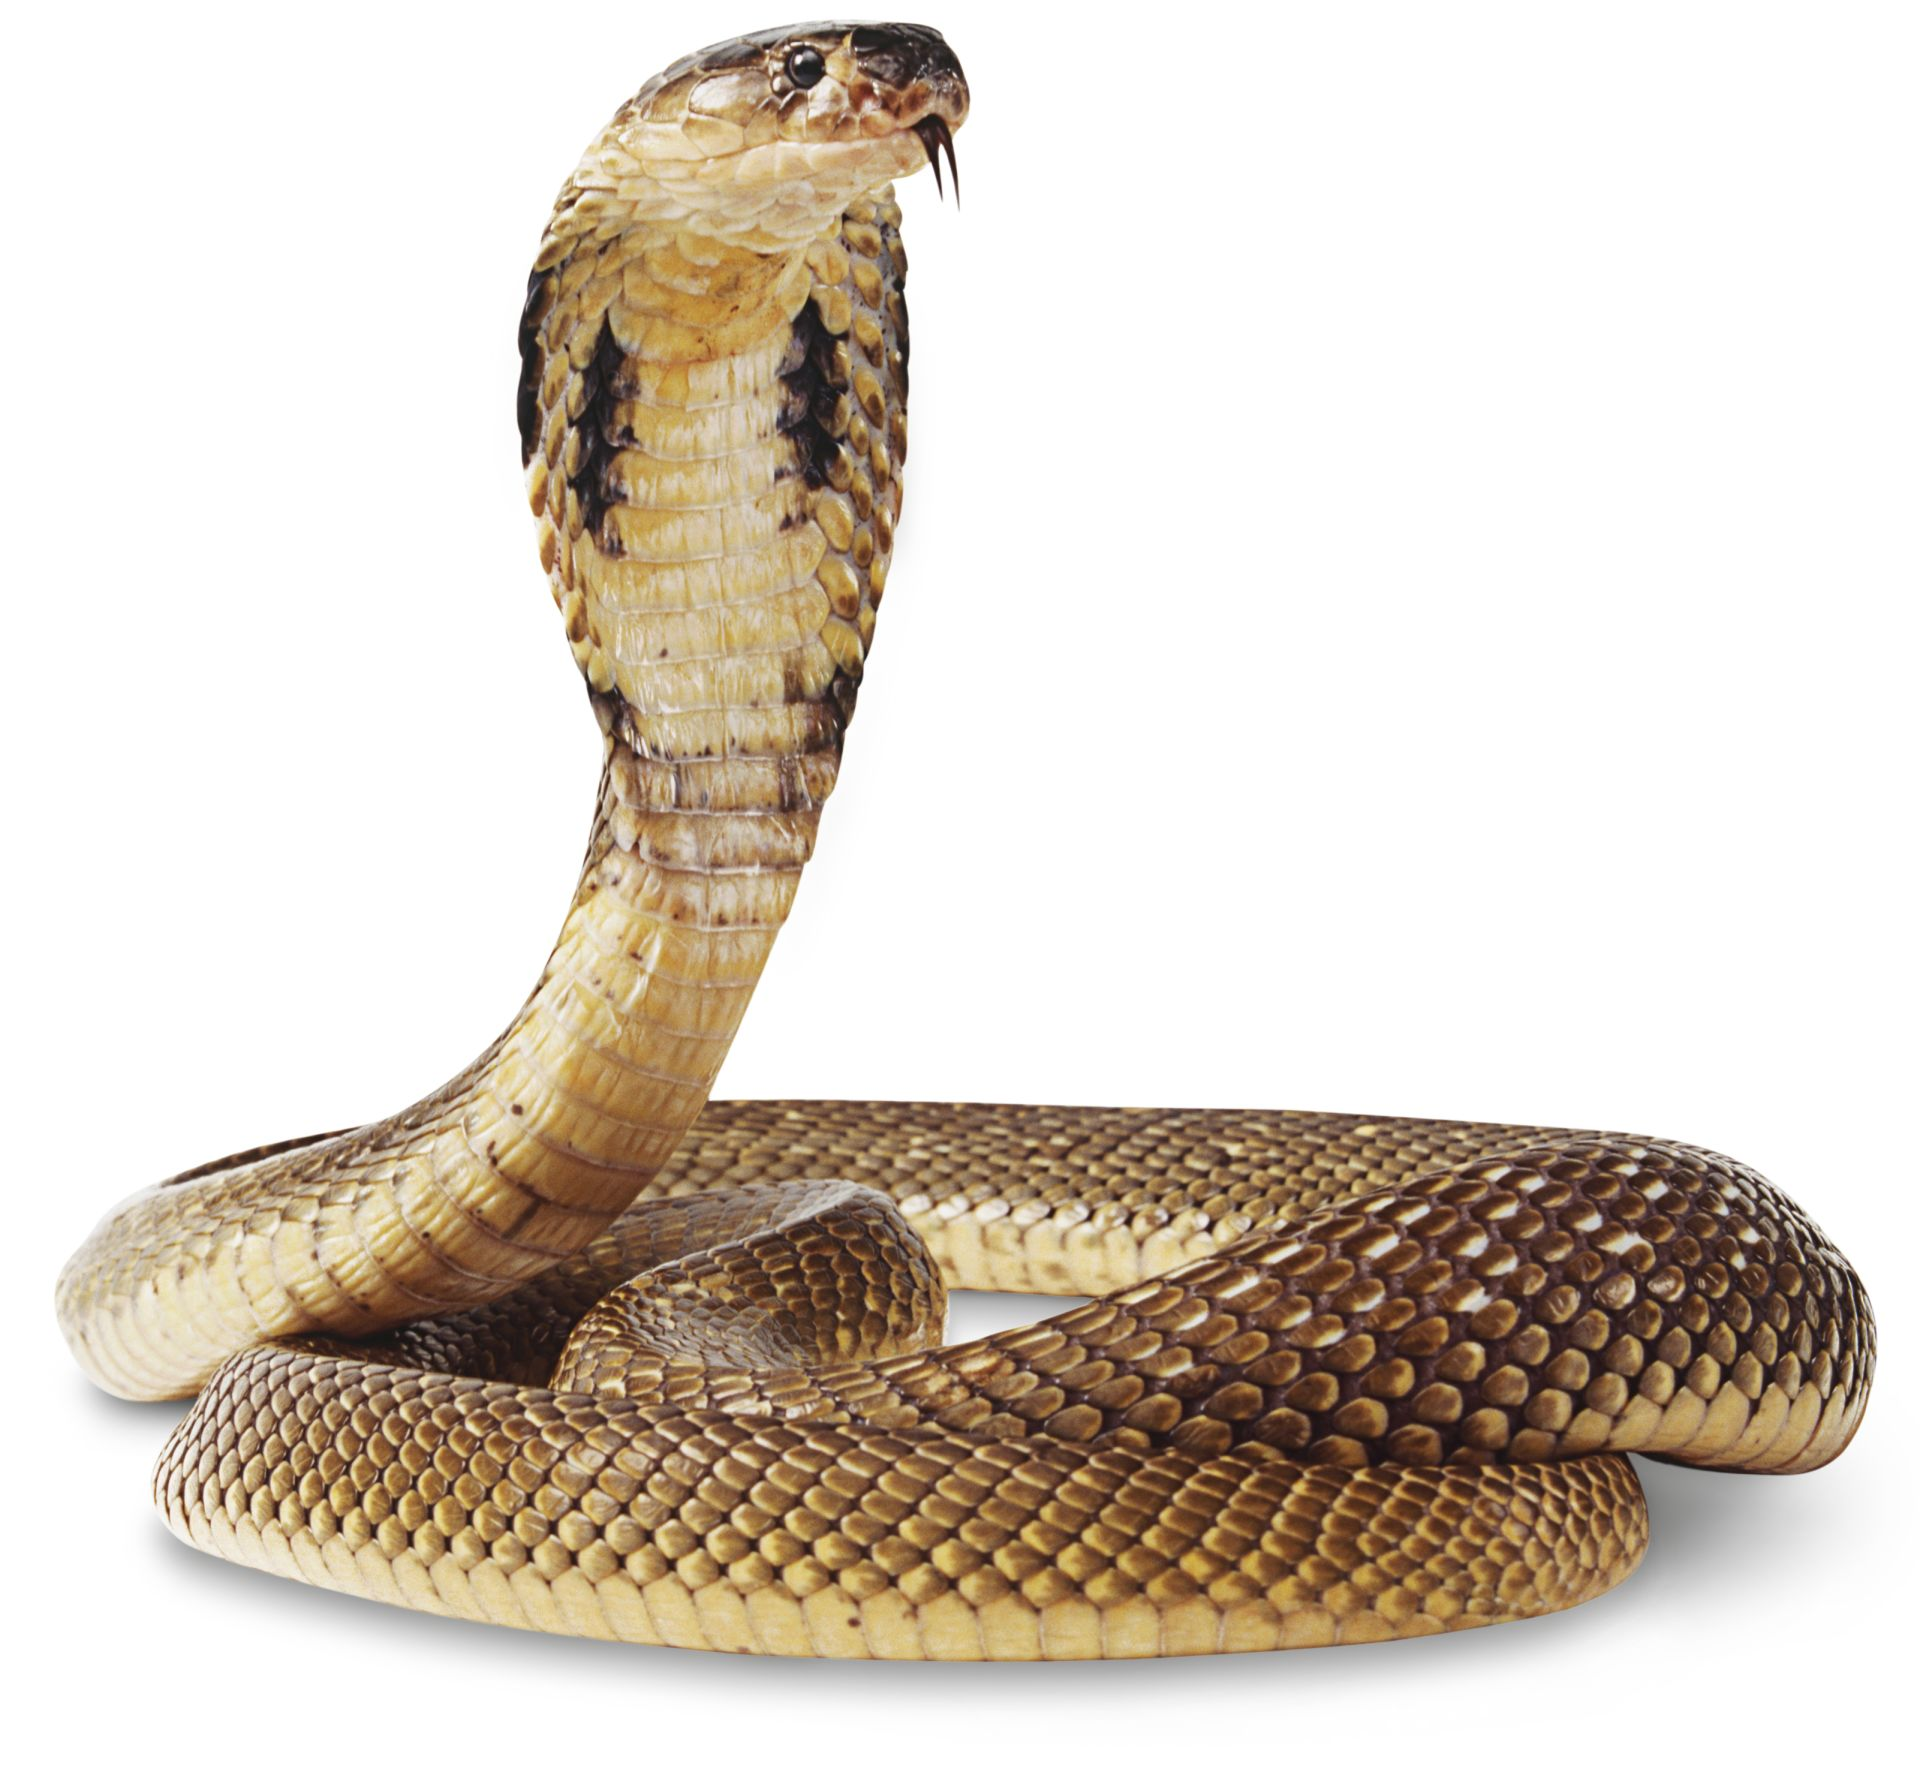 cobra snake facts cobra snake information dk find out